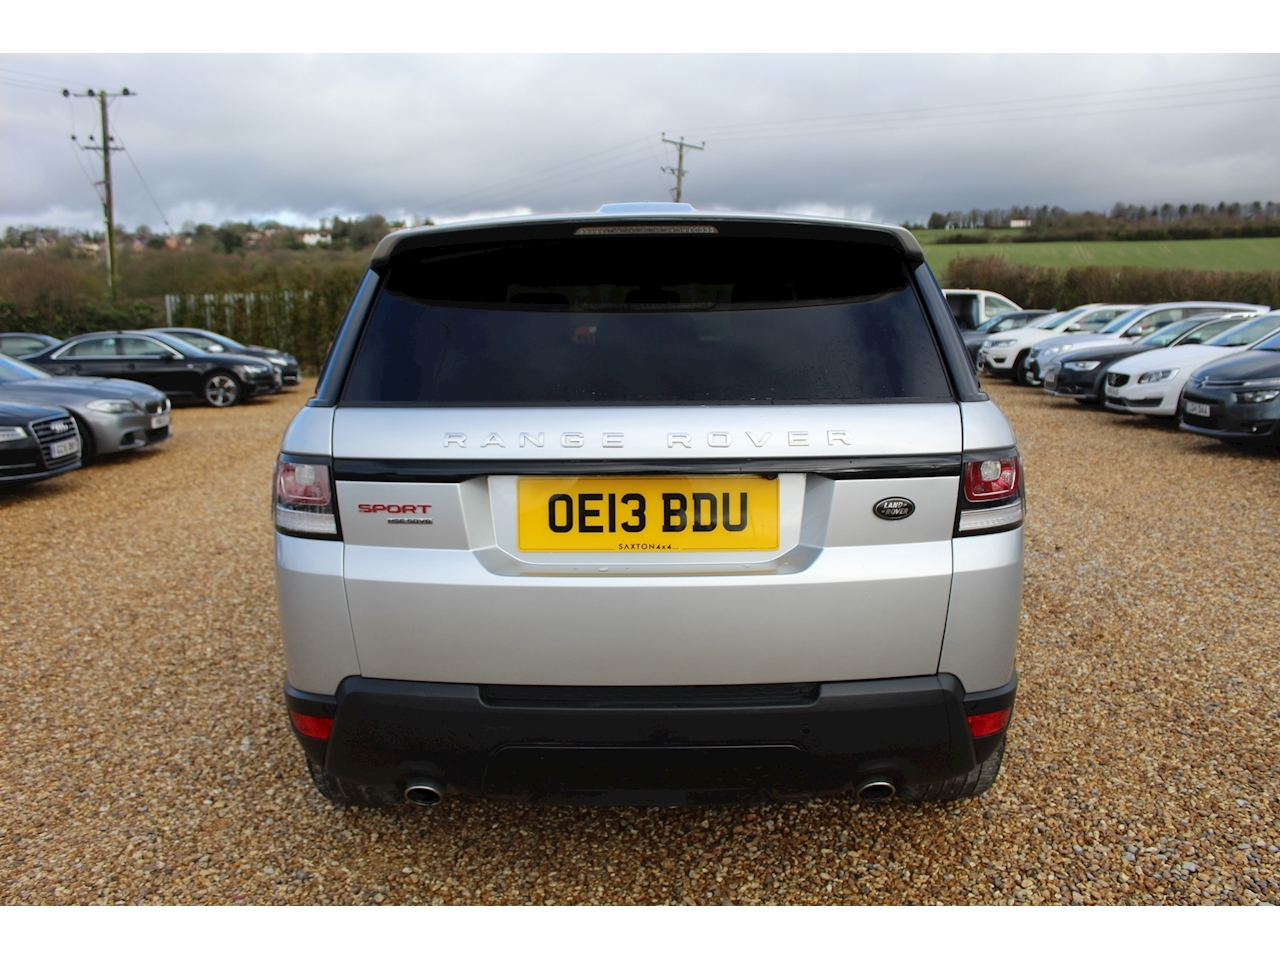 Land Rover Range Rover Sport Sdv6 Hse Dynamic Estate 3.0 Automatic Diesel